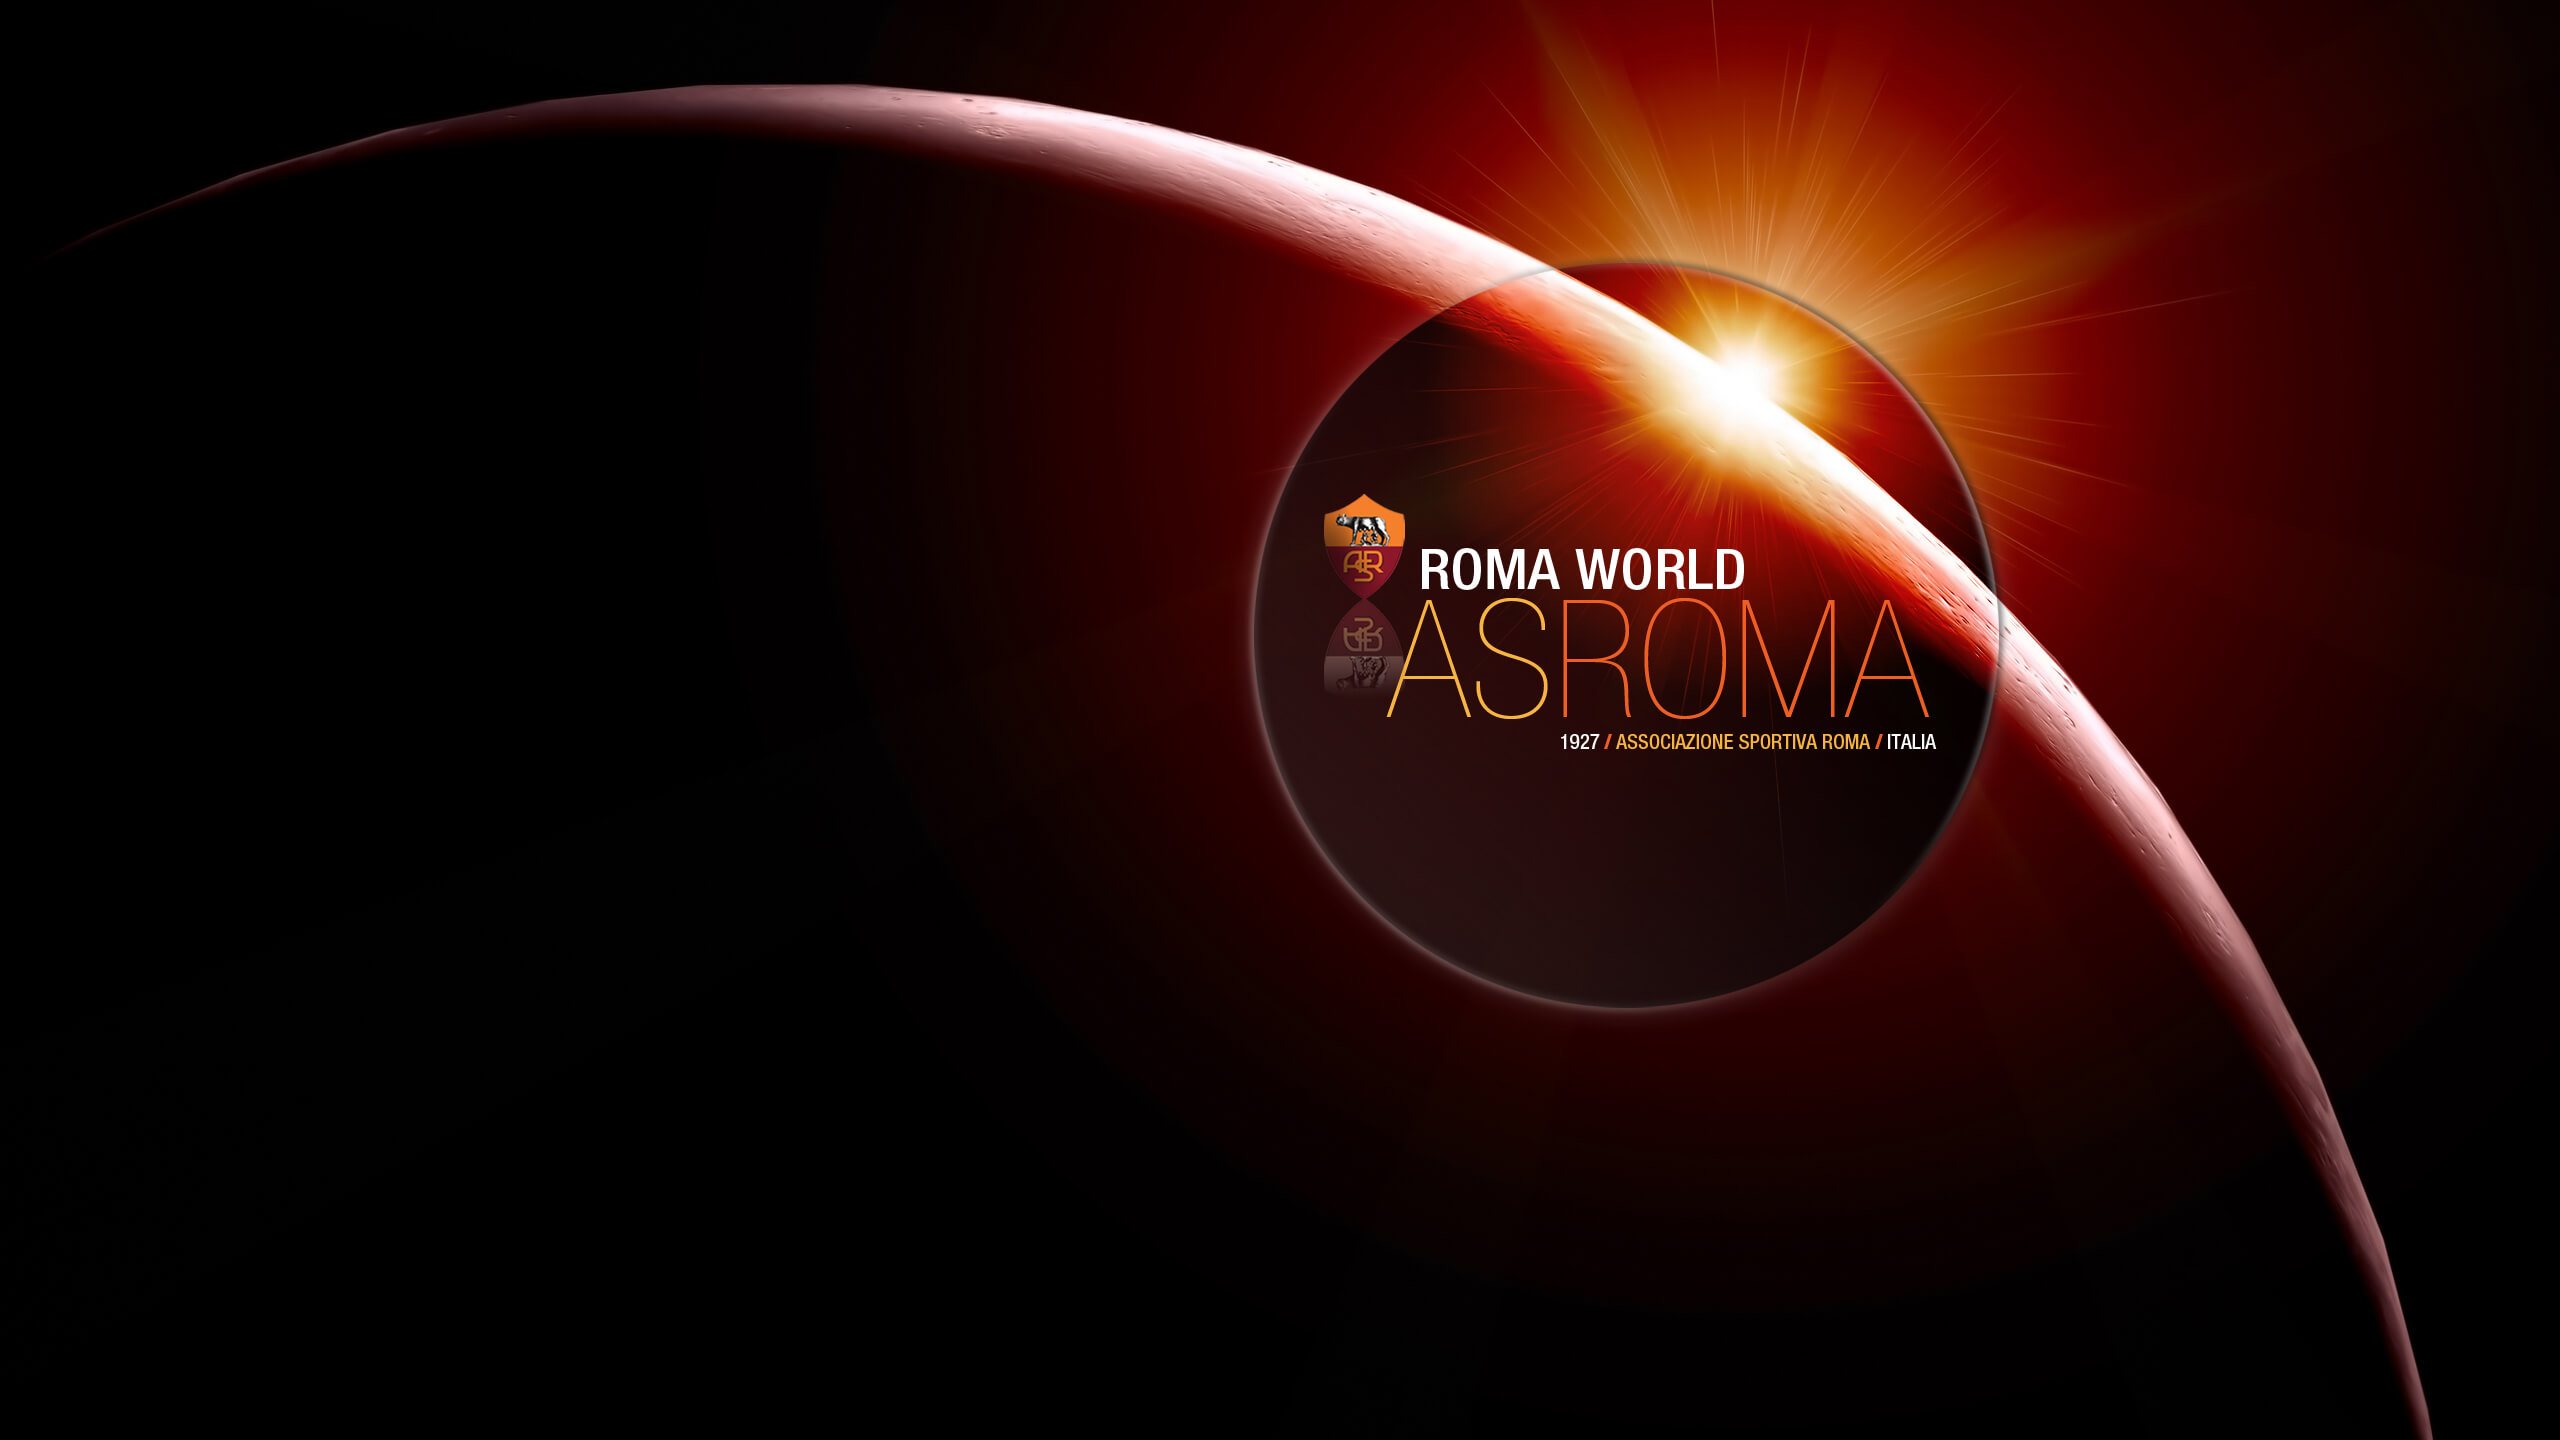 as-roma-logo-desktop-wallpaper_1_1.jpg